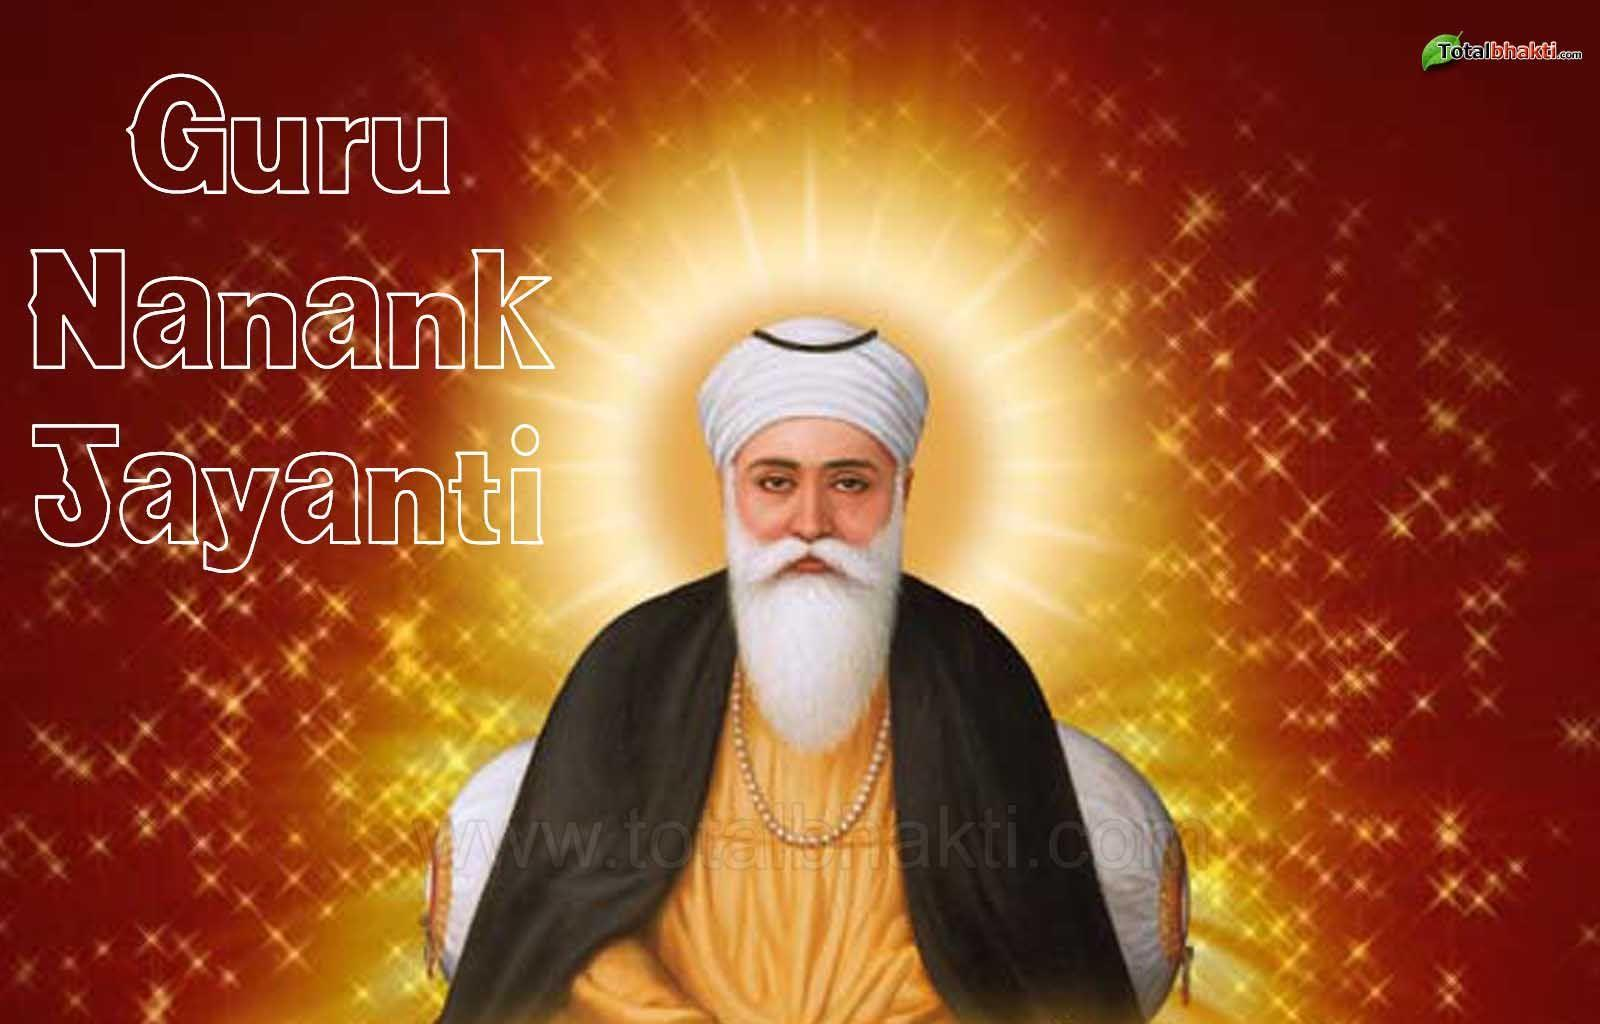 Happy Guru Nanak Jayanti Birthday Sms Messages Wishes HD Images ...